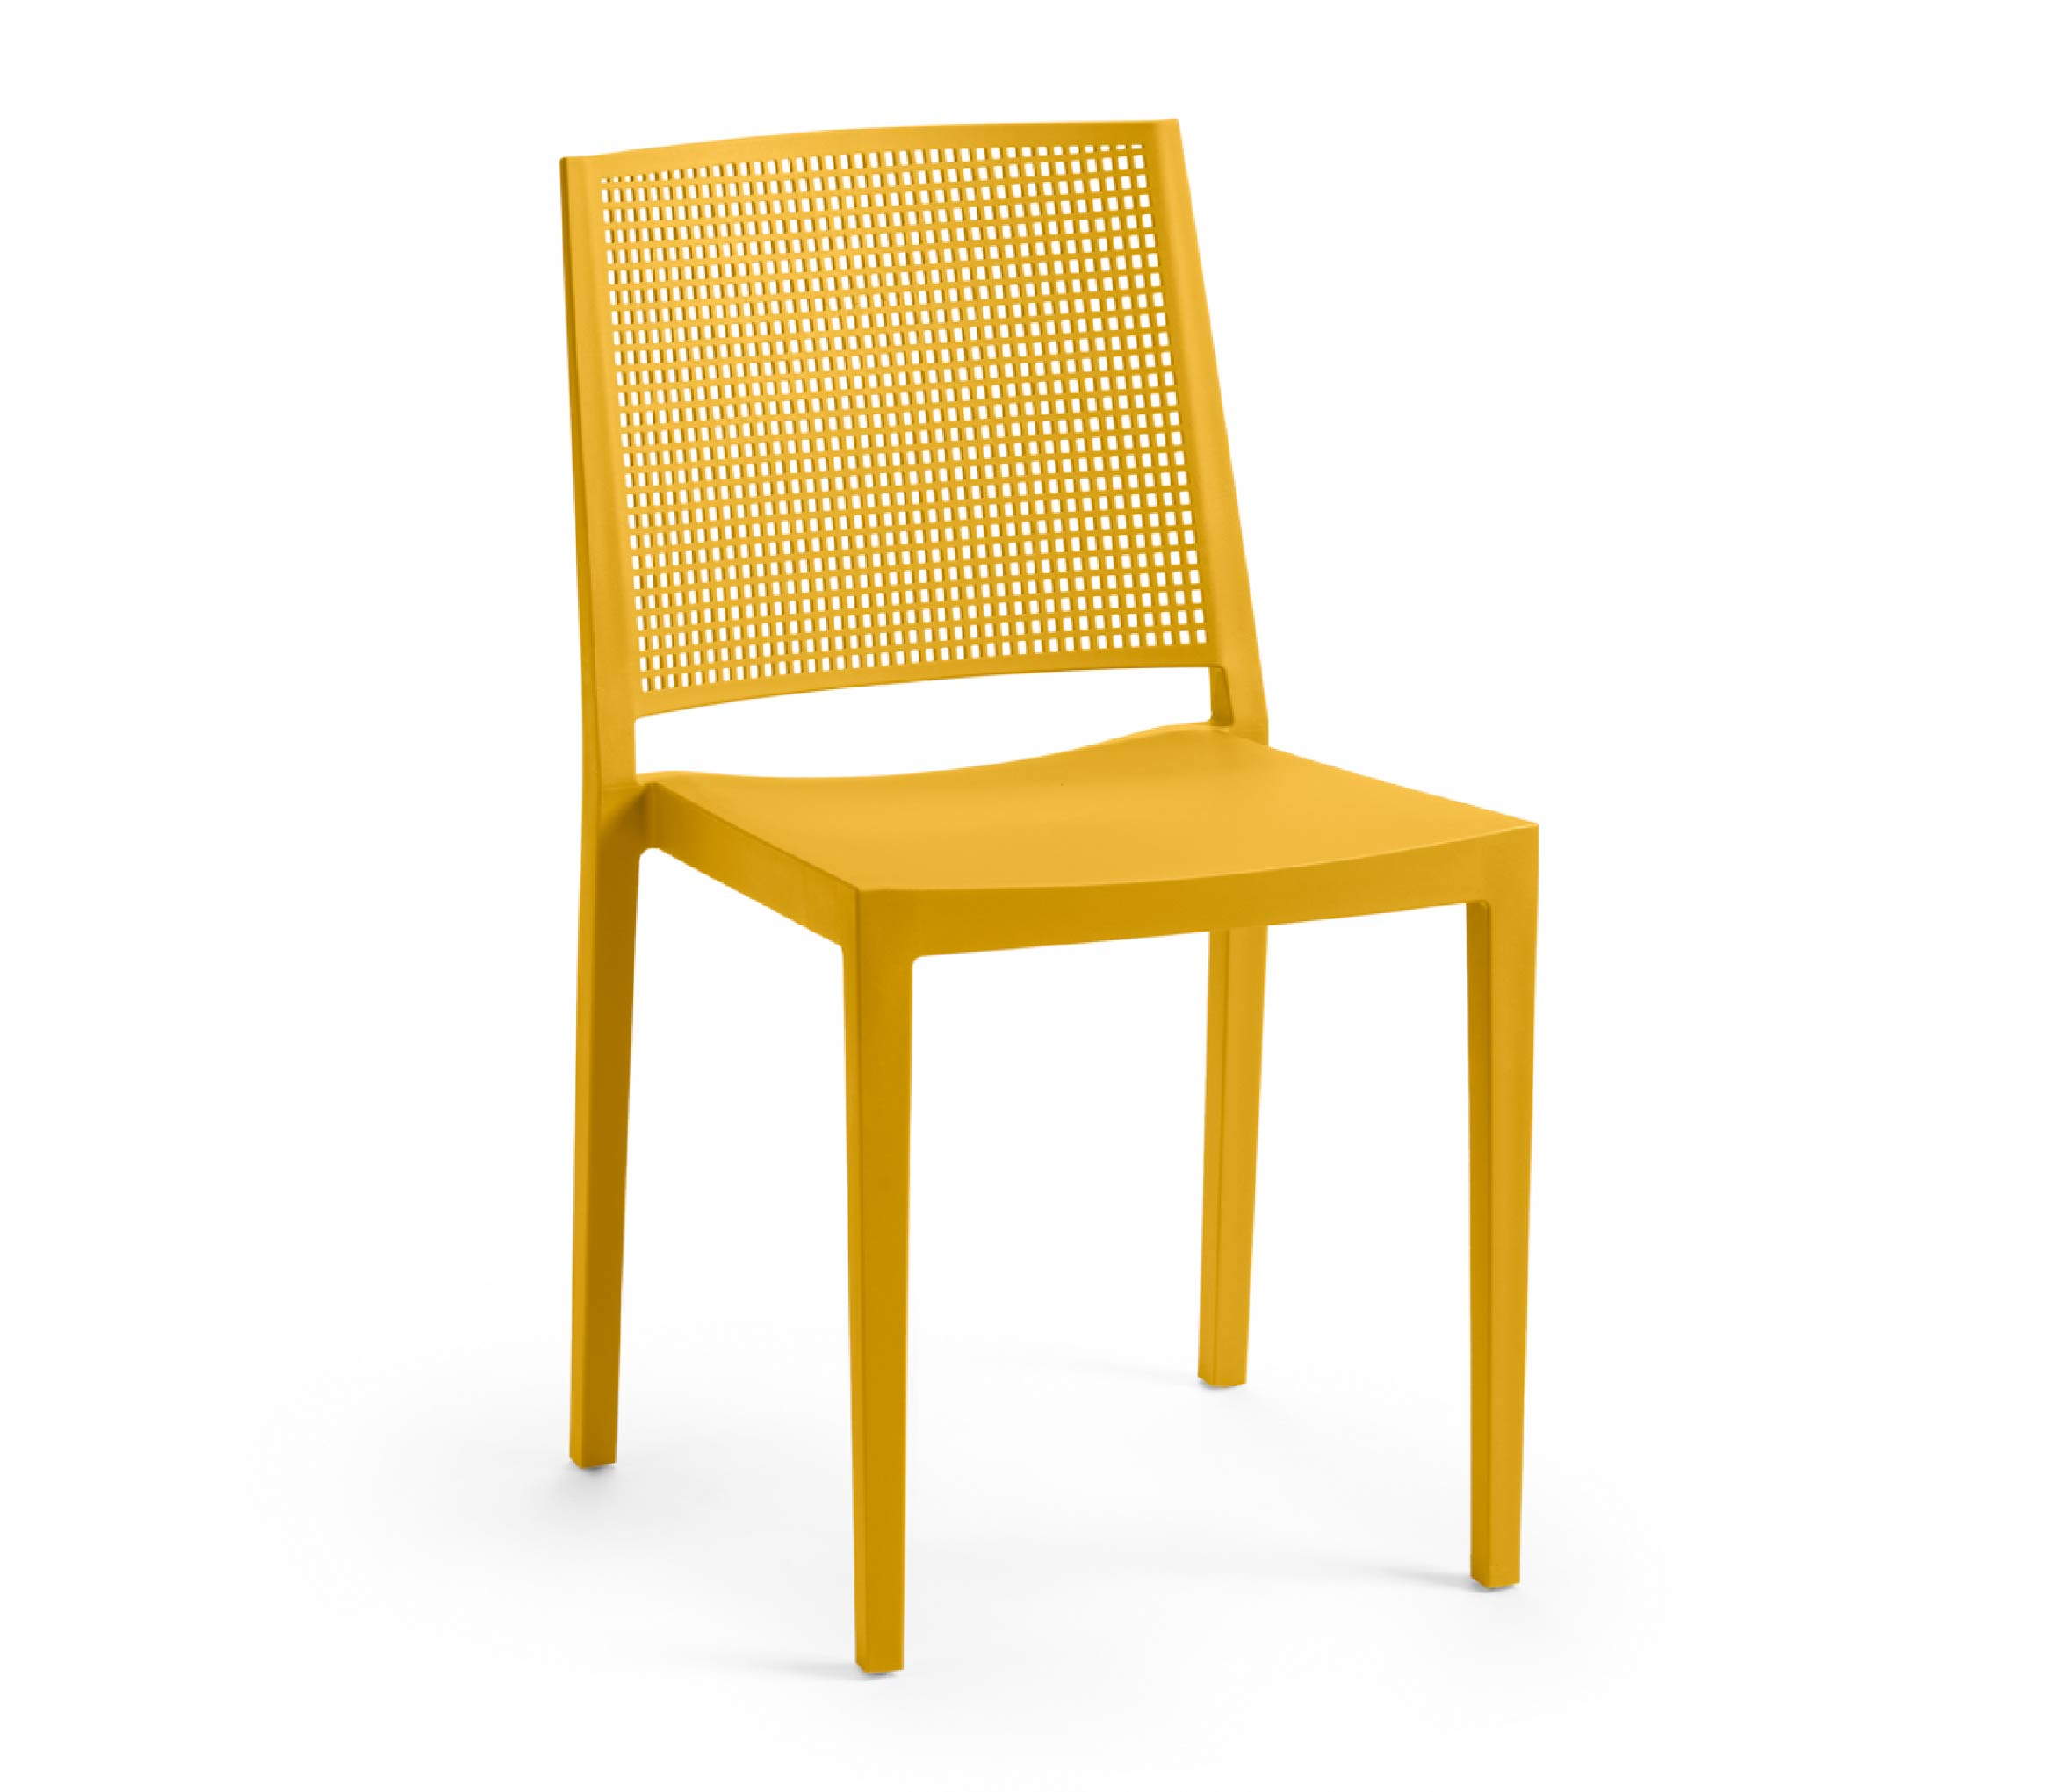 3 - TENSAI_FURNITURE_GRID_PLASTIC_mostard_chair_color_white_background_205_001